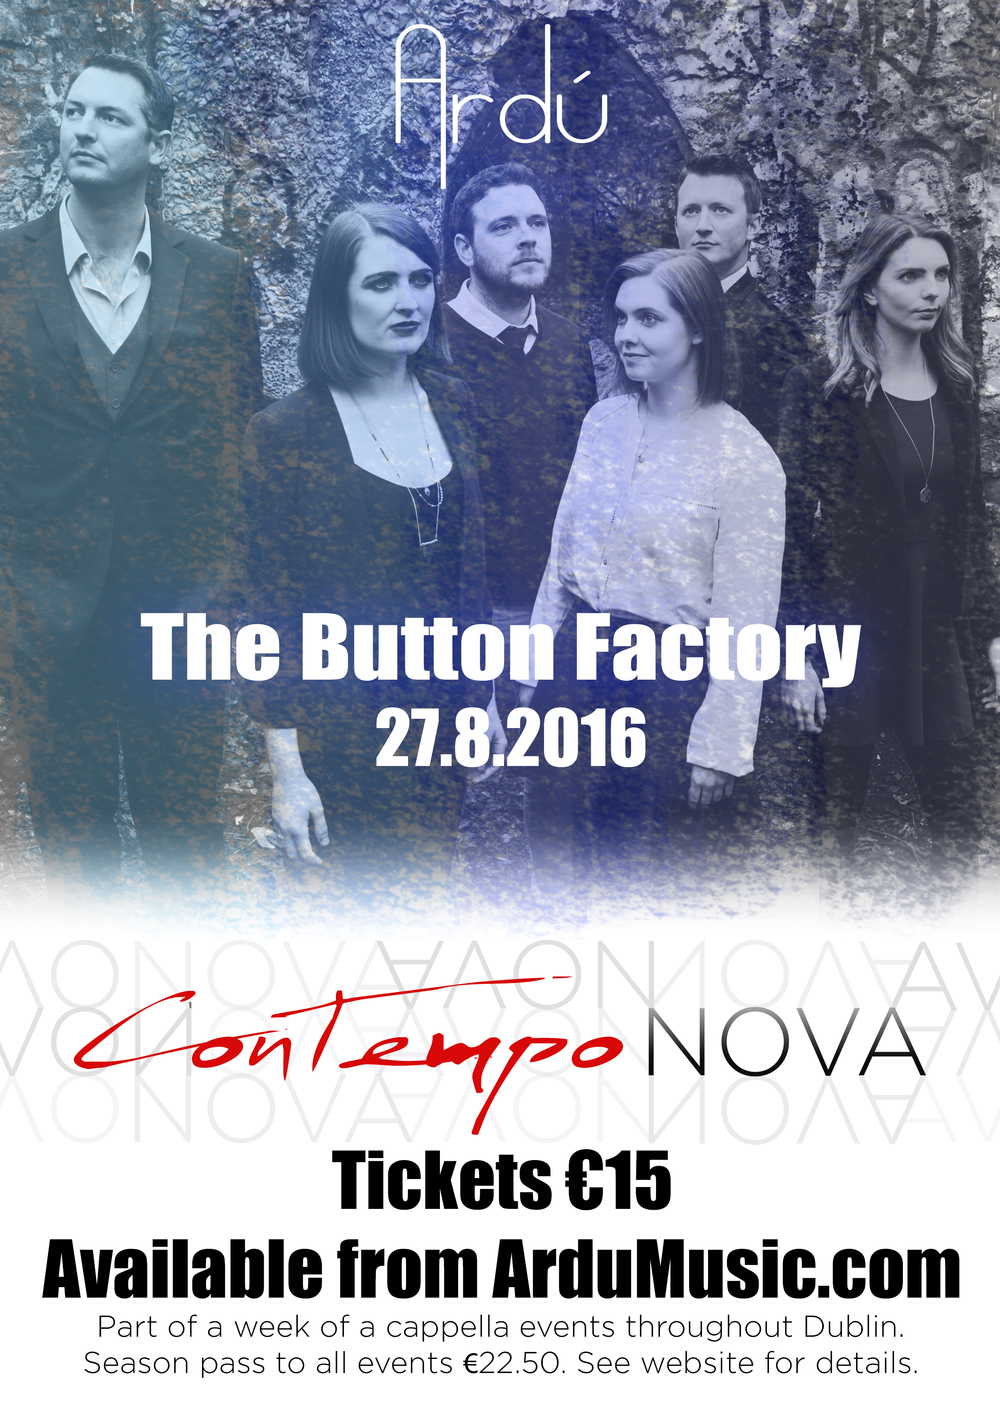 Award winning ensemble Ardú are proud to announce their first headline show in Dublin's Button Factory with ConTempo NOVA - an all-new programme of modern a cappella music!  Come hear some of the best songs in popular music reimagined for four, five and six voices including My Baby Just Cares For Me (NIna Simone), Isn't She Lovely (Stevie Wonder), Bohemian Rhapsody (Queen) and many more. This concert concludes a week of a cappella events in Dublin and will feature the winning ensemble from Ireland's premiere a cappella competition. Season Pass ticket (€22.50) to all events are available to purchase from www.ardumusic.com  Since 2014, Ardú have pioneered the genre of a cappella music in Ireland with performances at the Cork International Choral Festival, the Edinburgh Fringe Festival, London A Cappella Festival and have featured on BBC Radio Ulster, RTÉ Lyric FM and RTÉ Radio 1. They were awarded 1st prize in the National Vocal Ensemble Competition at the City of Derry International Choral Festival 2015 and runners up in the Lyric FM Choirs for Chirstmas competition 2015.  Ardú specialise in arranging well-known popular music for four, five and six voices, exploring the use of the voice as an instrument with percussive sounds as well as melody and harmony www.ardumusic.com